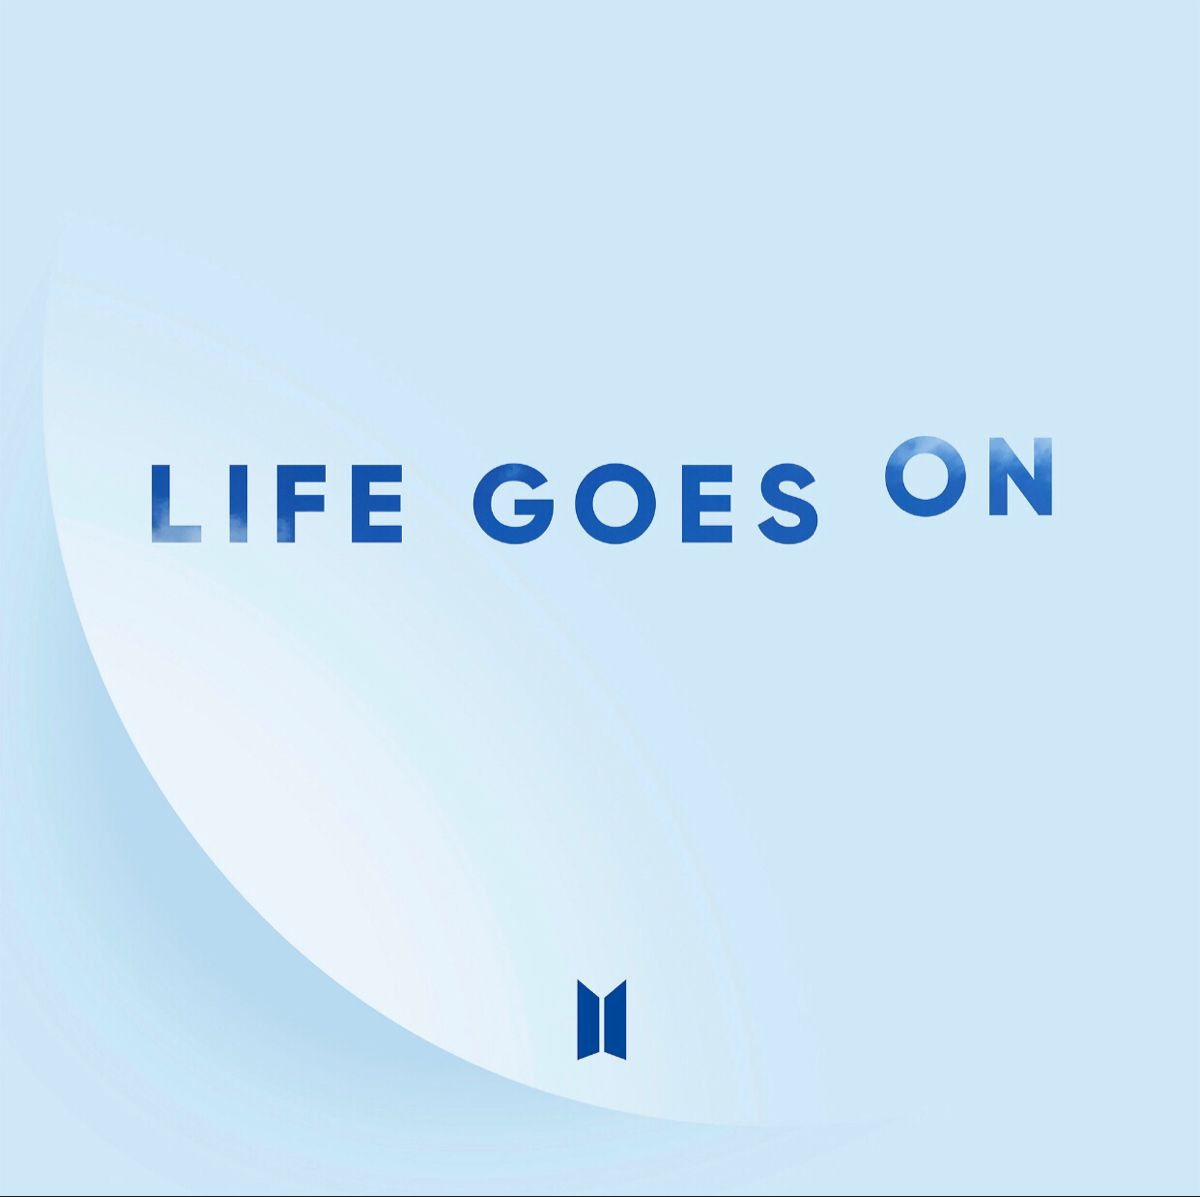 Bighit Entertainment On Twitter Life Goes On Life Bts